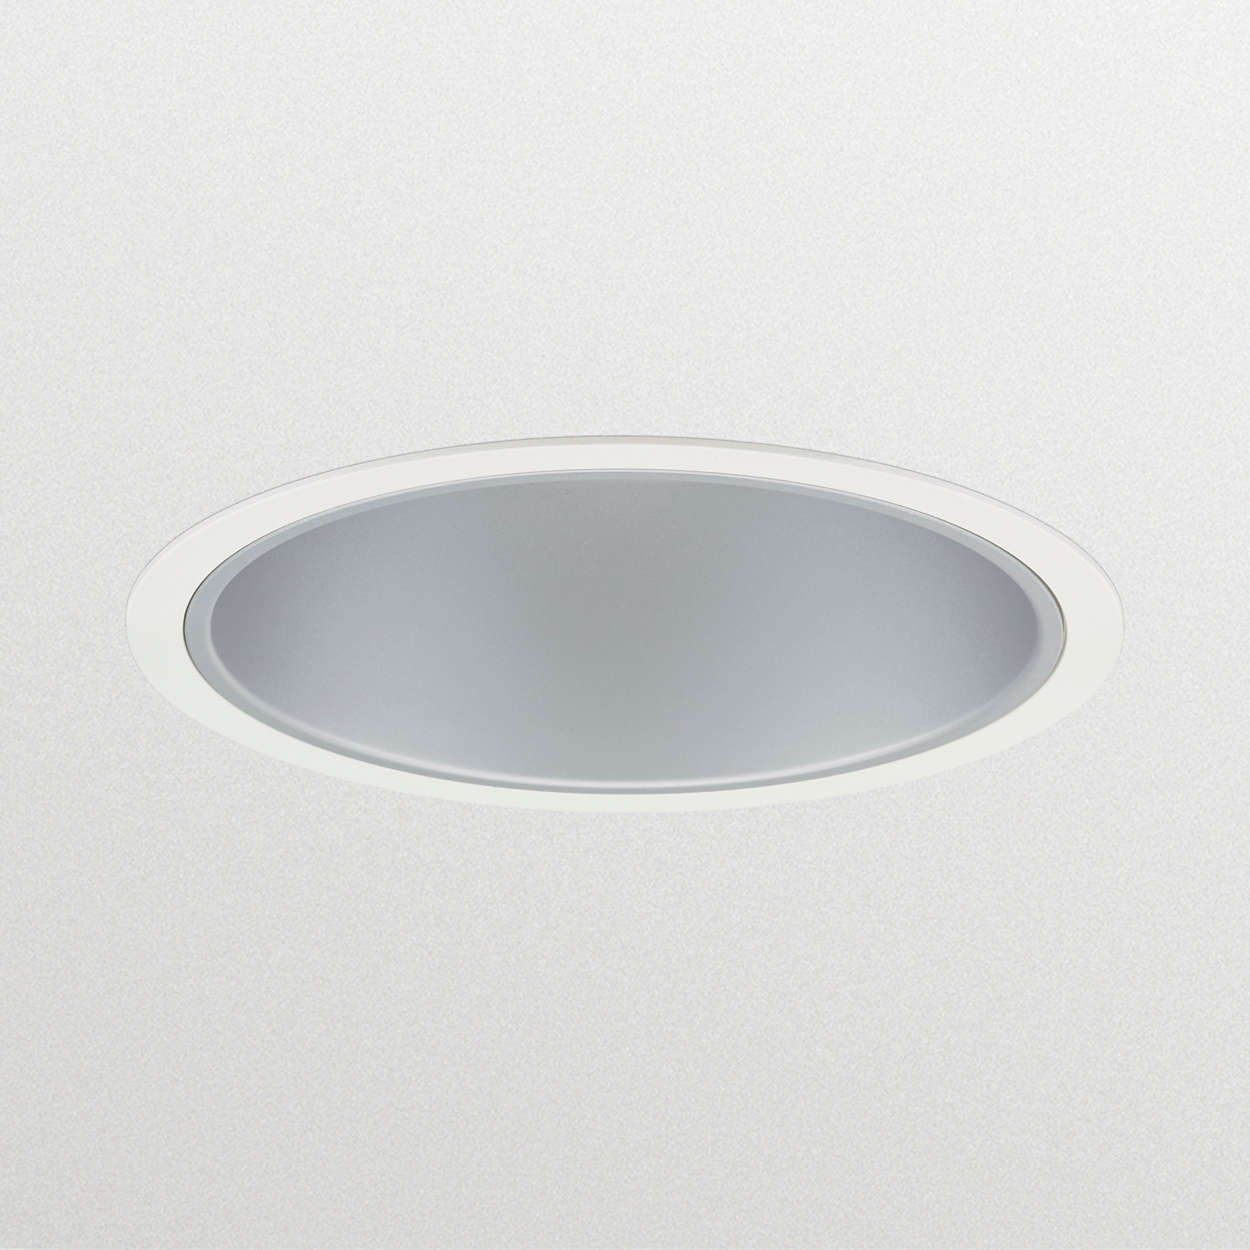 LuxSpace recessed – high efficiency, visual comfort and a stylish design